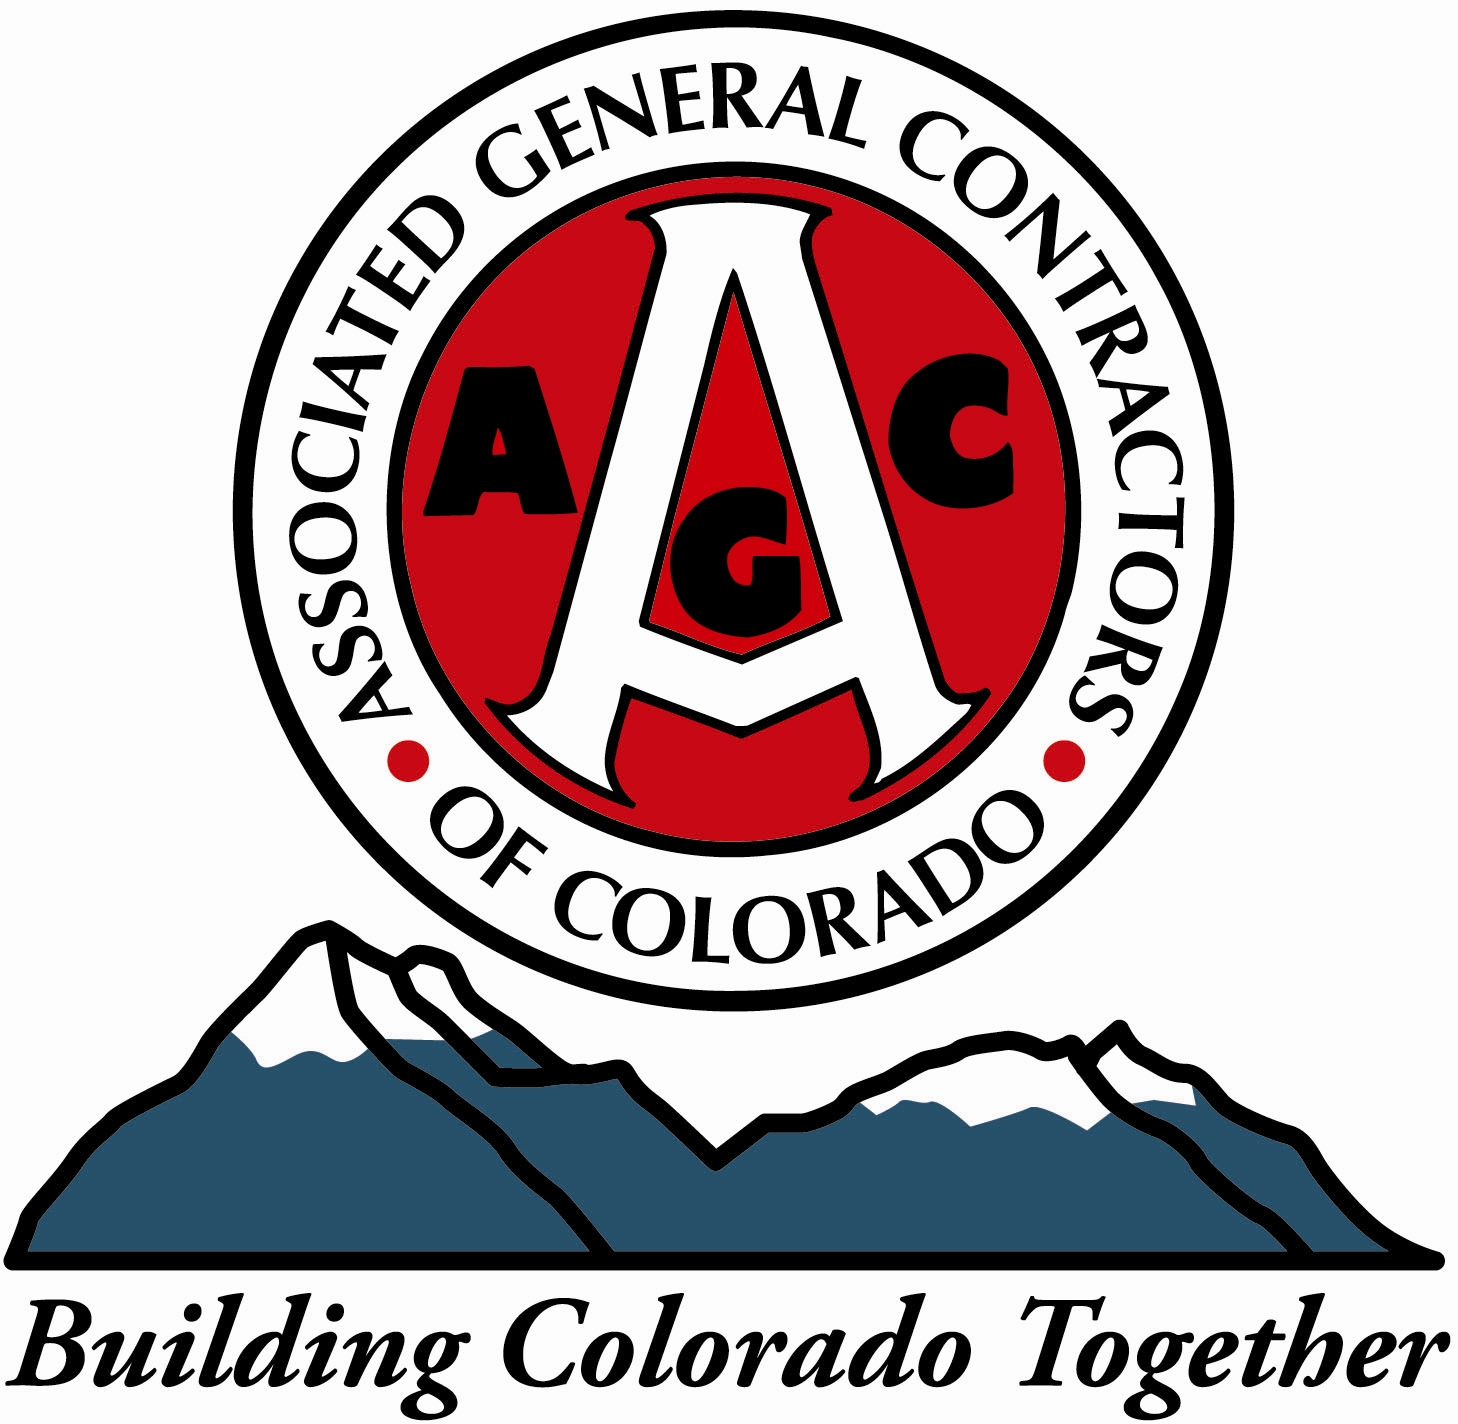 associatedgeneralcontractors